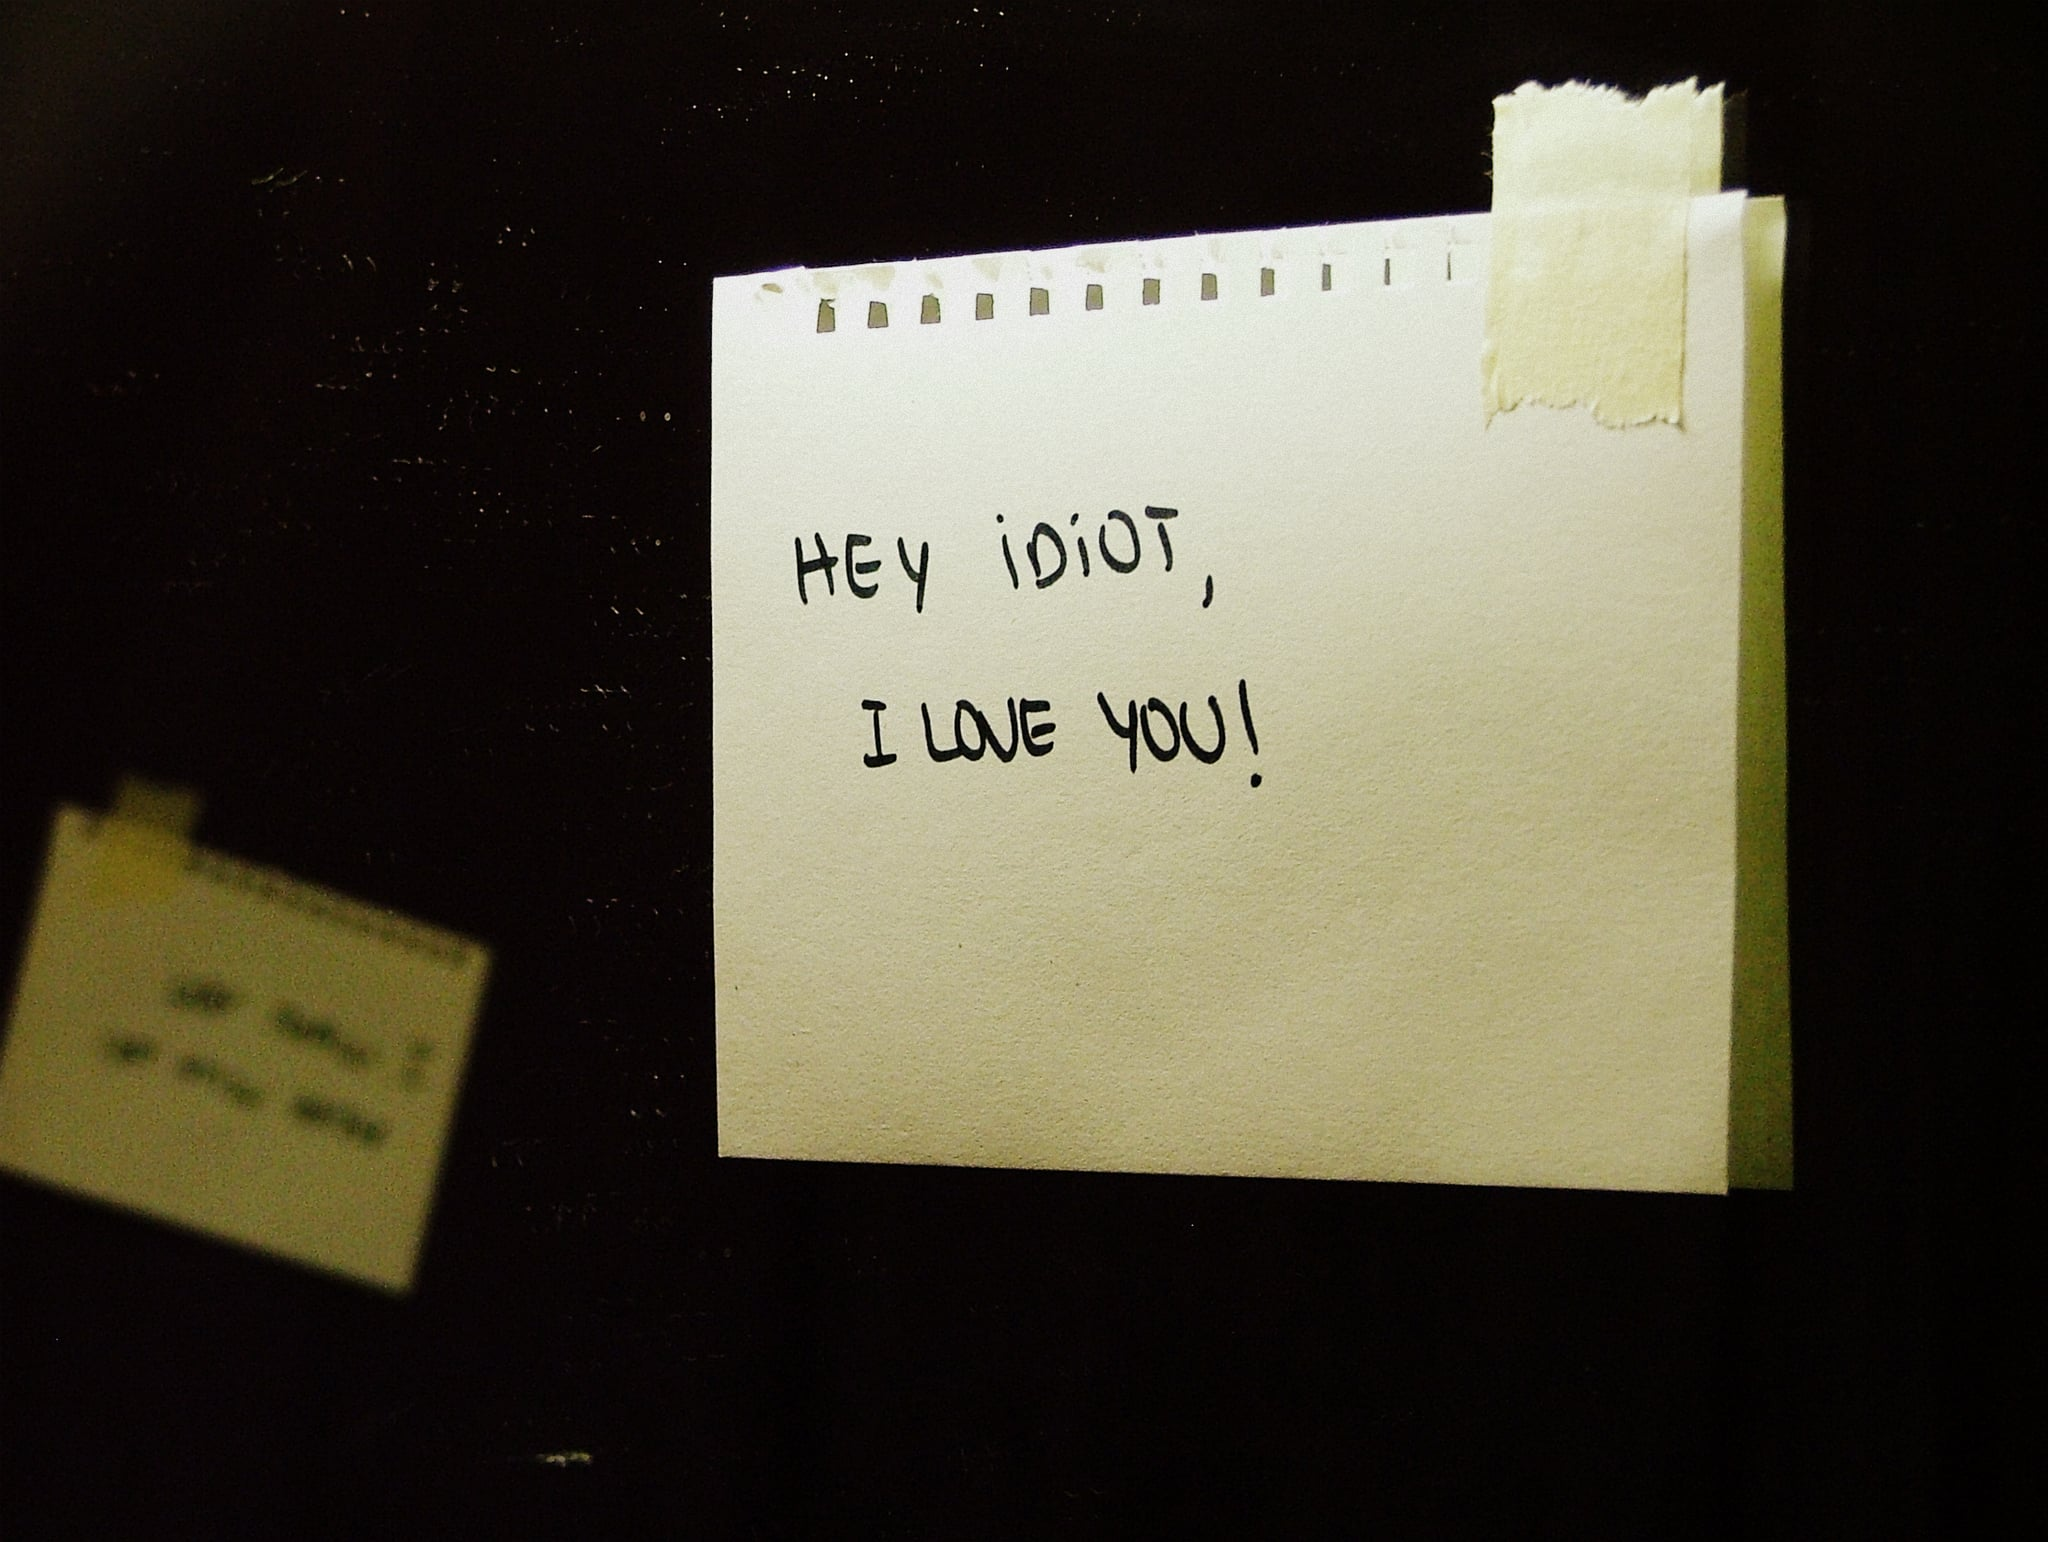 Leave them a funny love note somewhere surprising.